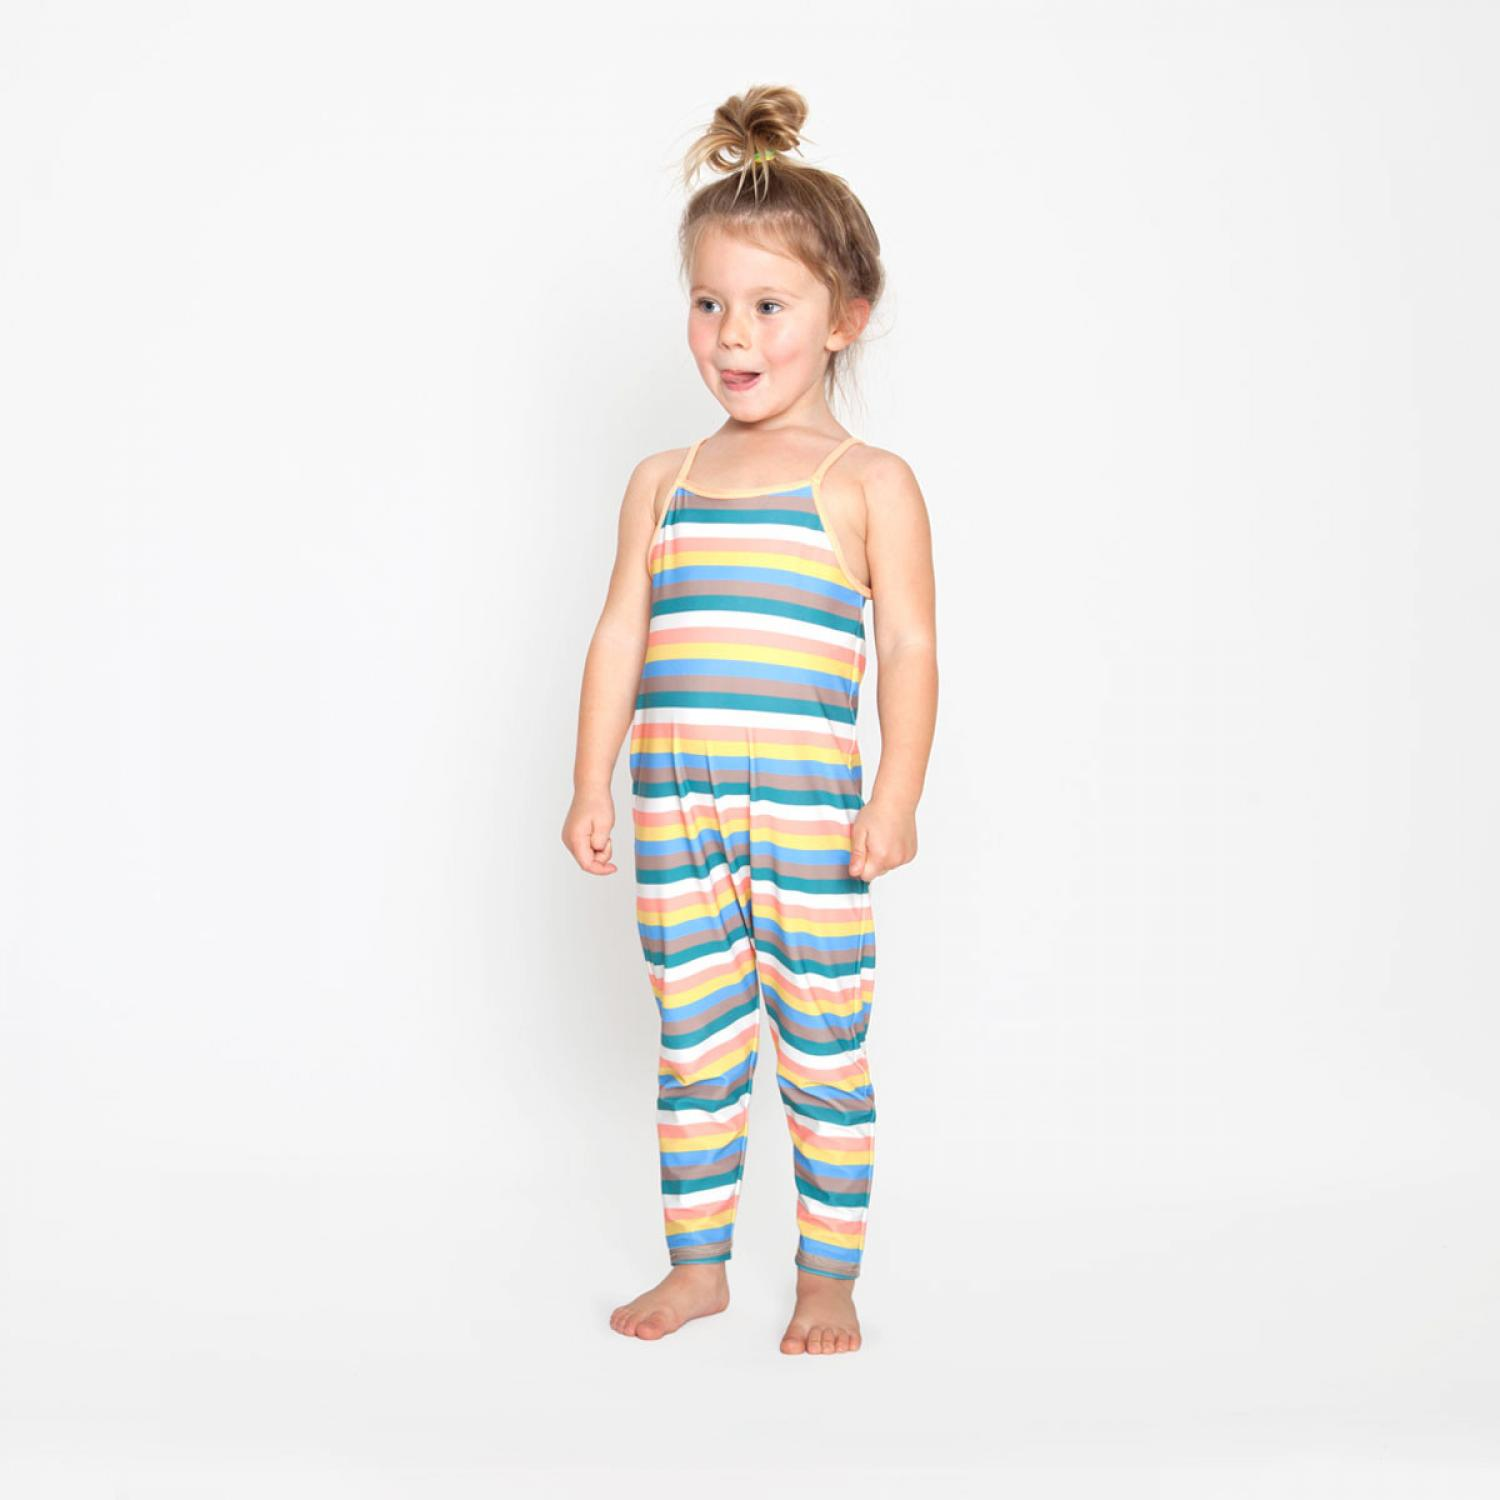 Mini Seea Chimi Kids Jumpsuit - Azucar